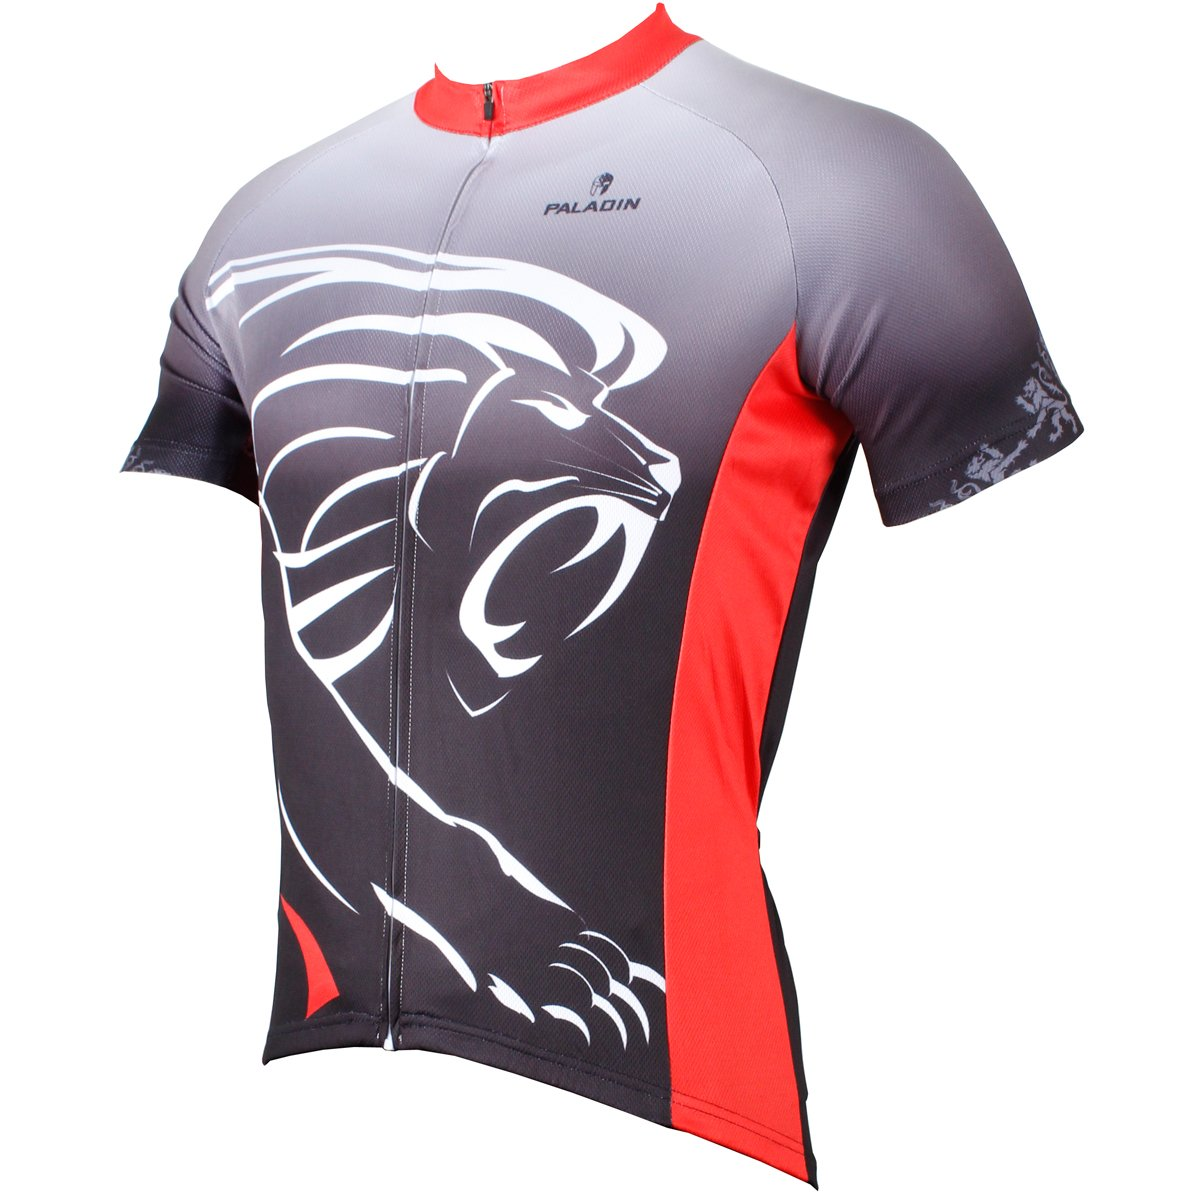 2466235d3 Amazon.com   Paladin Cycling Jersey for Men Short Sleeve Lion Pattern Bike  Shirt   Sports   Outdoors